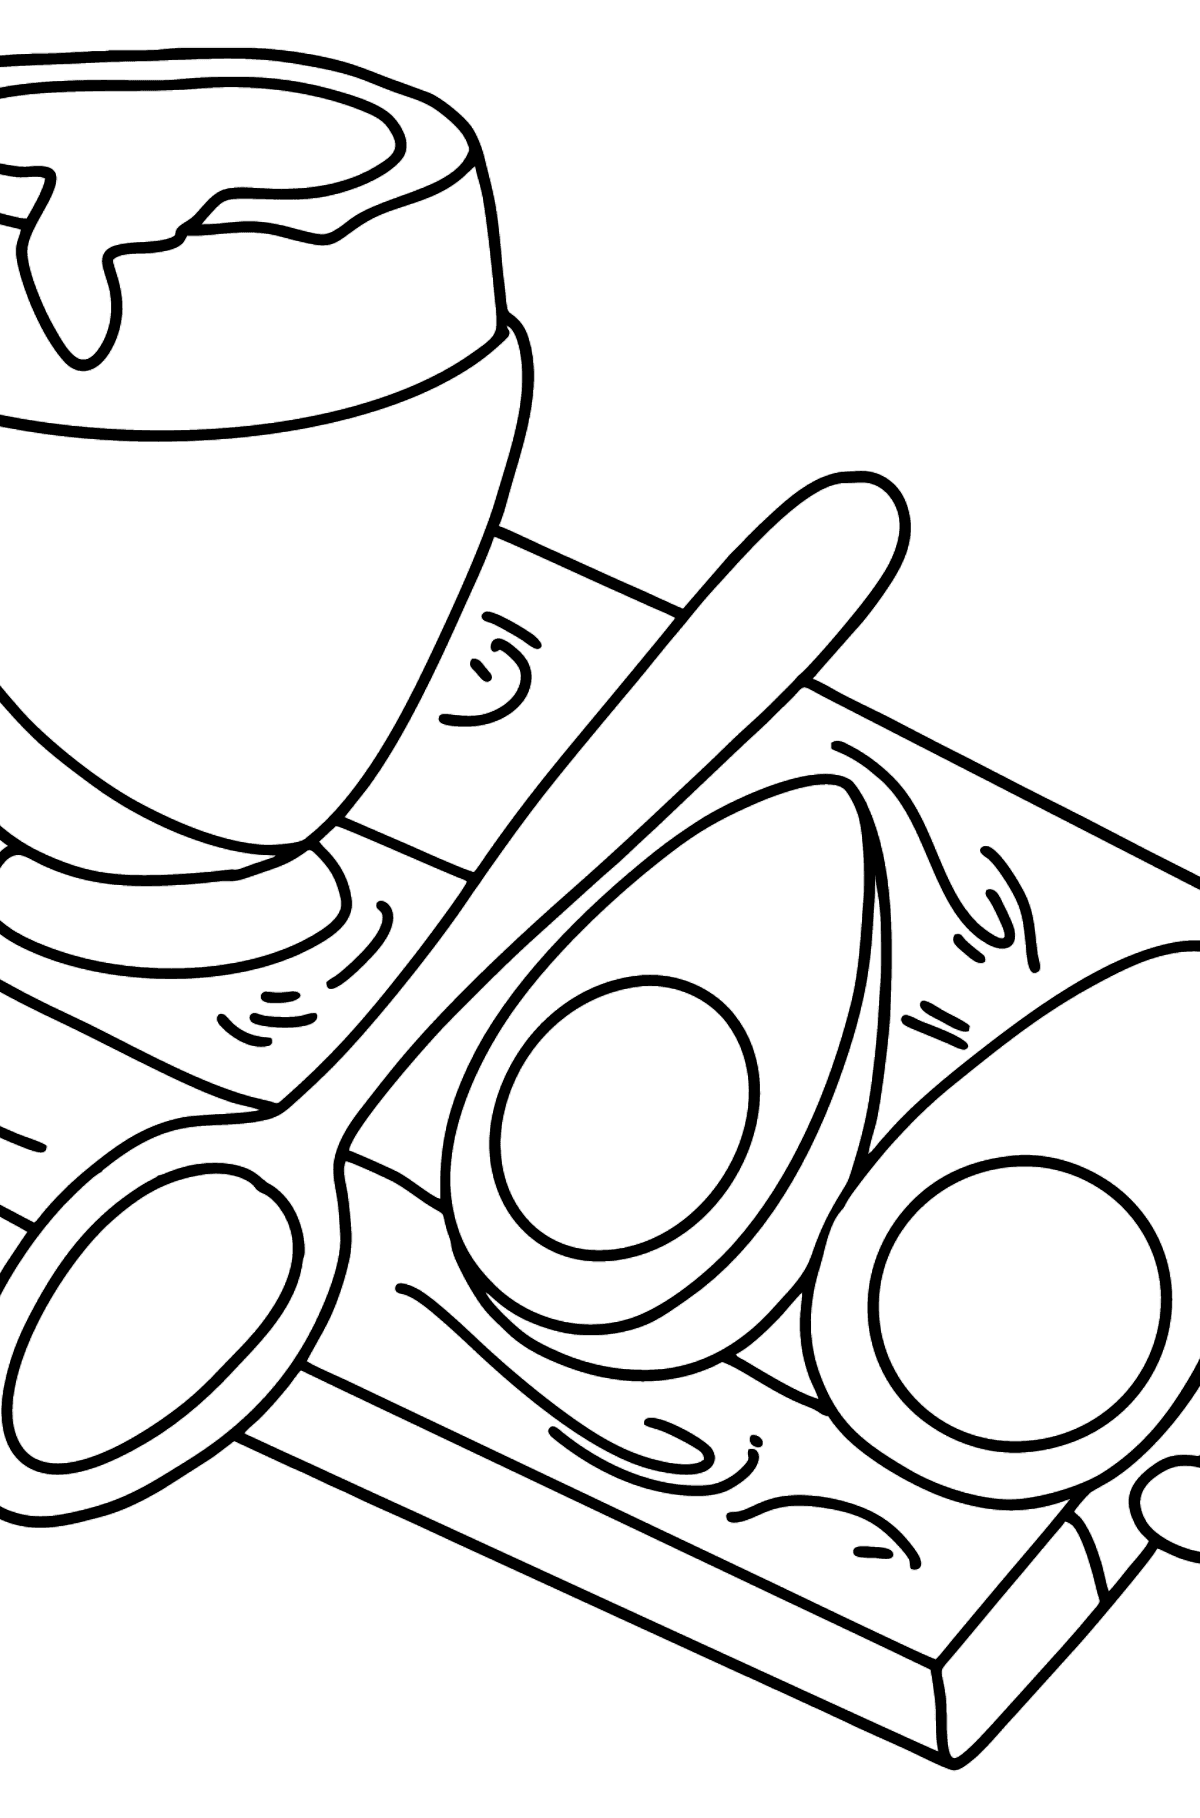 Hard-Boiled Egg and Poached Egg coloring page - Coloring Pages for Kids